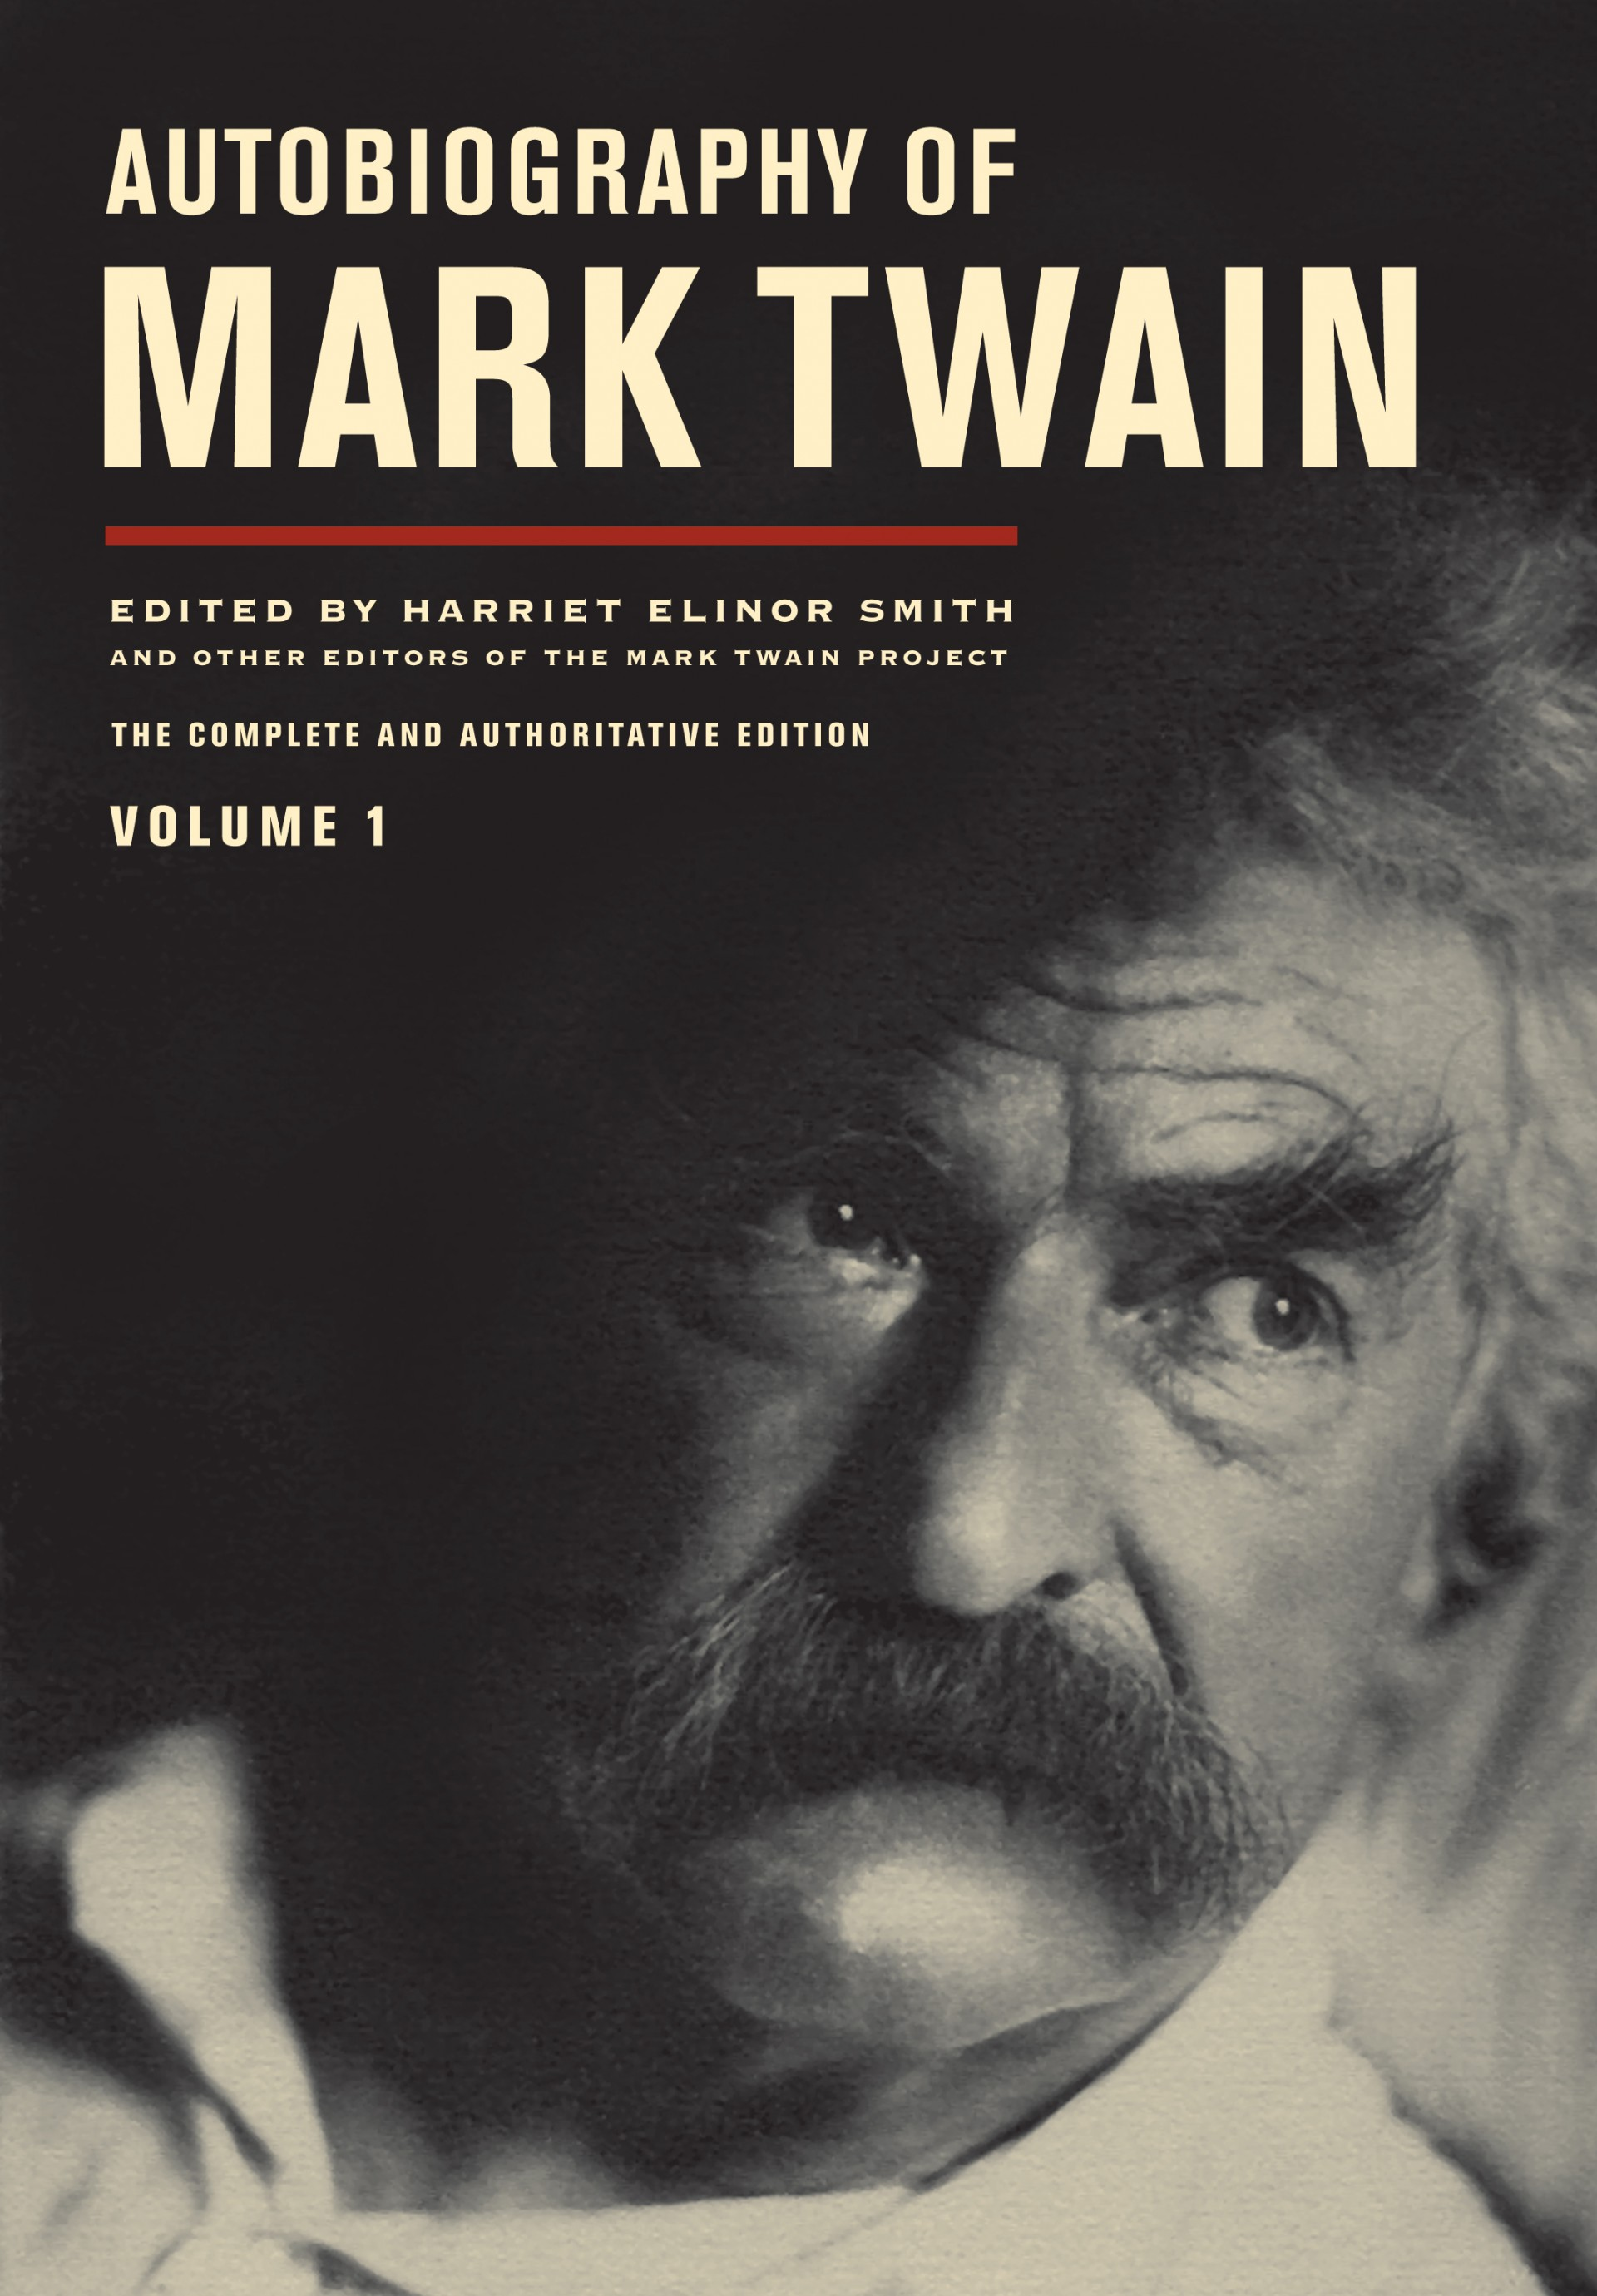 007 Essay Example Mark Twain Essays 9780520267190 Auto V1 Surprising Collected Tales Sketches Speeches And On Writing Post Civil War 1920